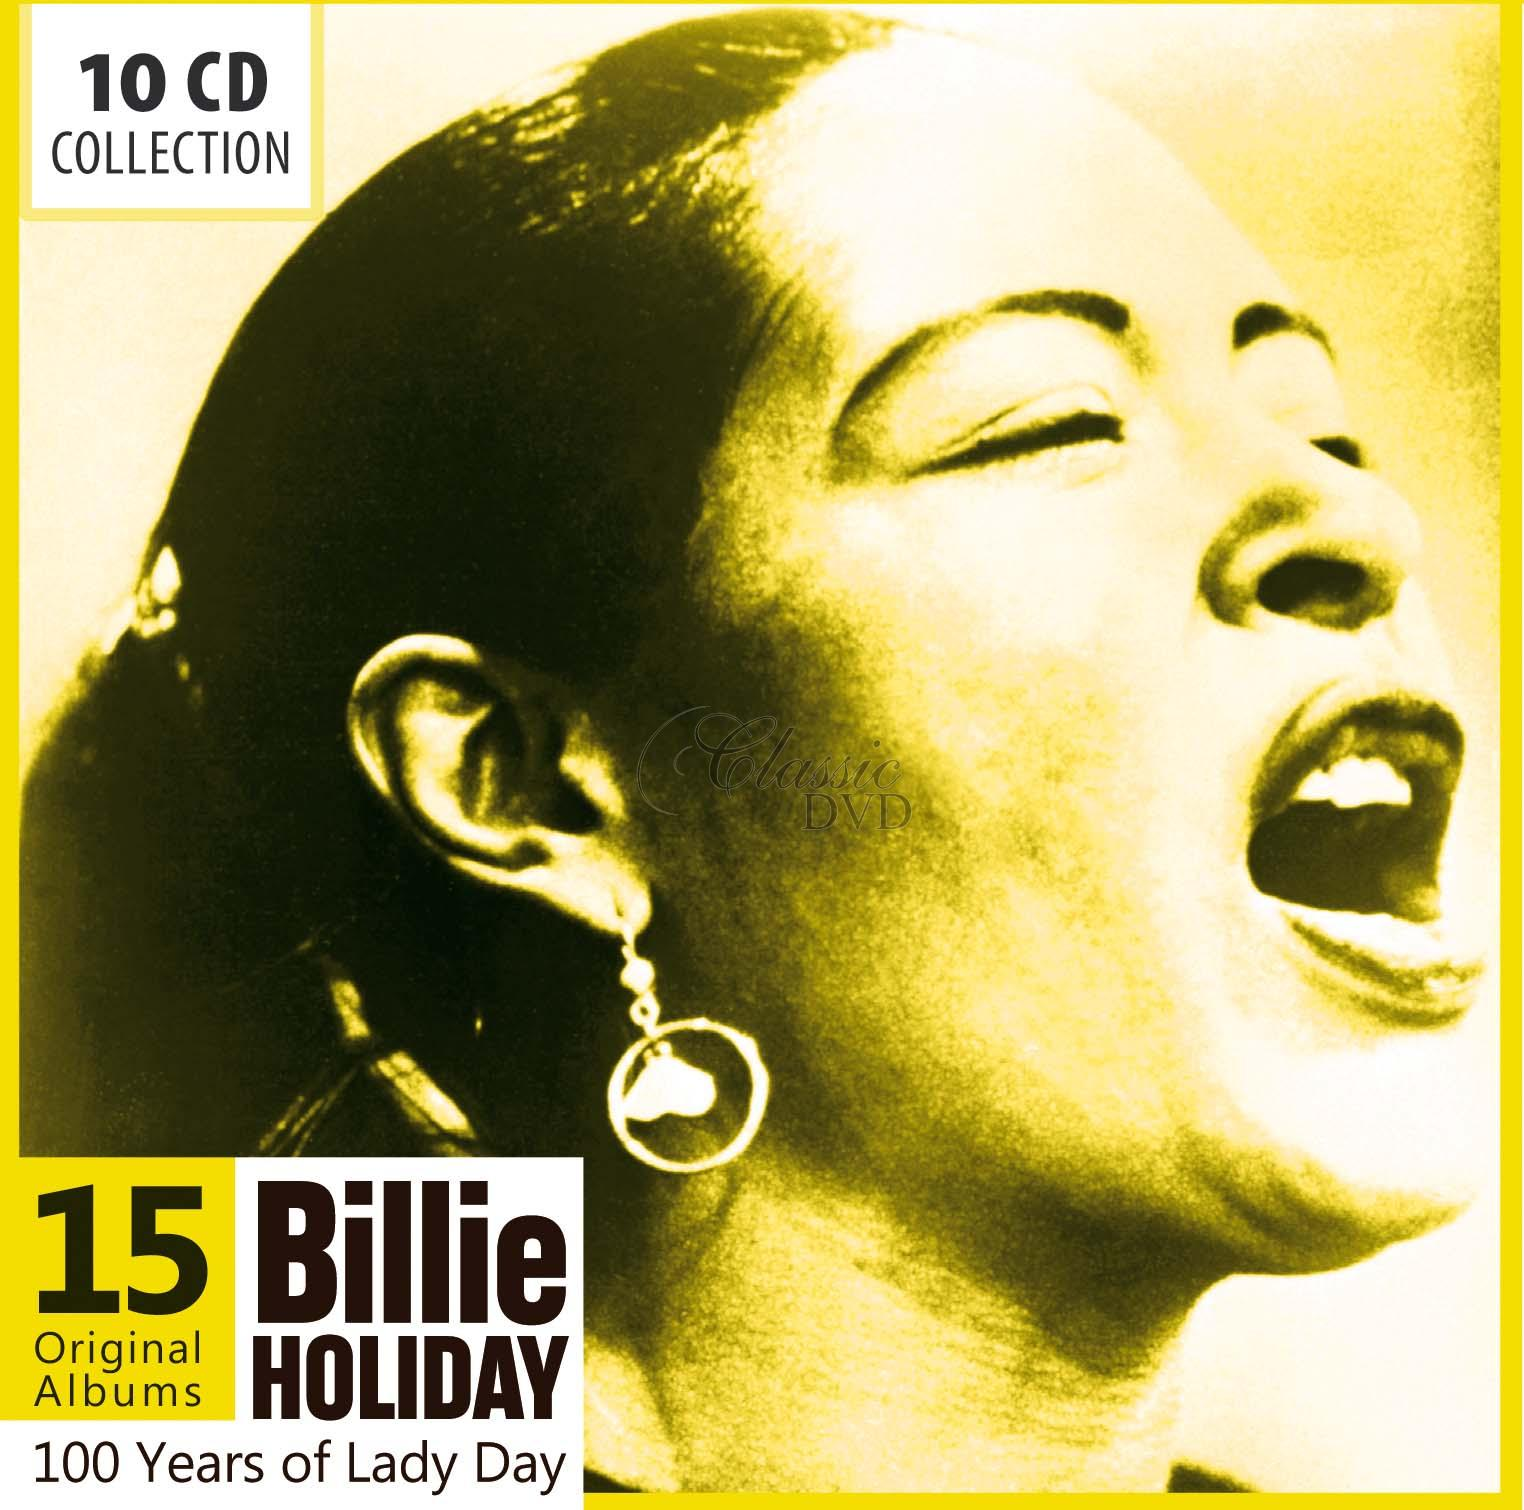 Billie Holiday - 100 Years of Lady Day (10CD)